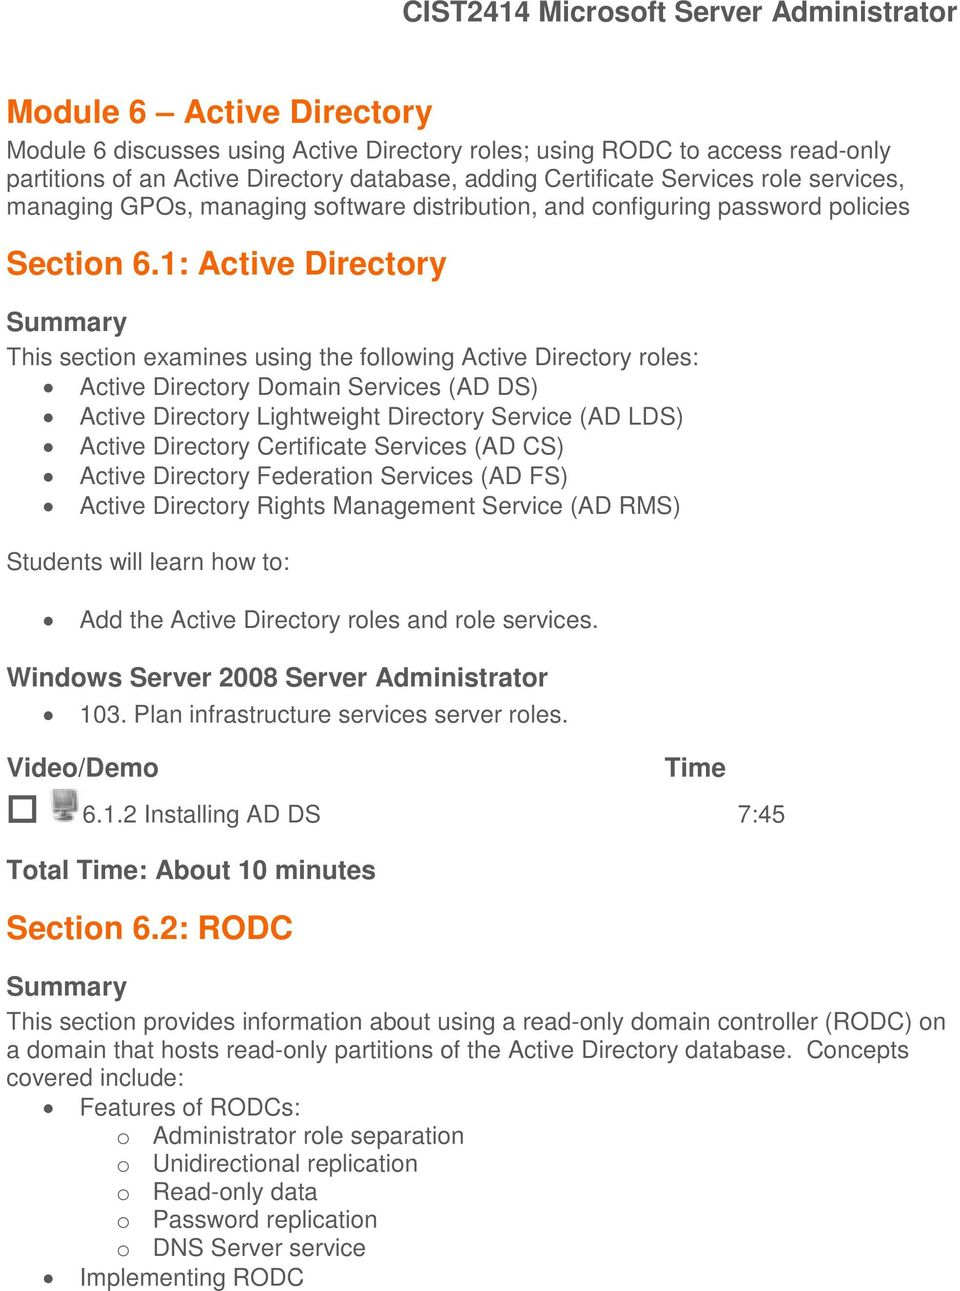 1: Active Directory This section examines using the following Active Directory roles: Active Directory Domain Services (AD DS) Active Directory Lightweight Directory Service (AD LDS) Active Directory